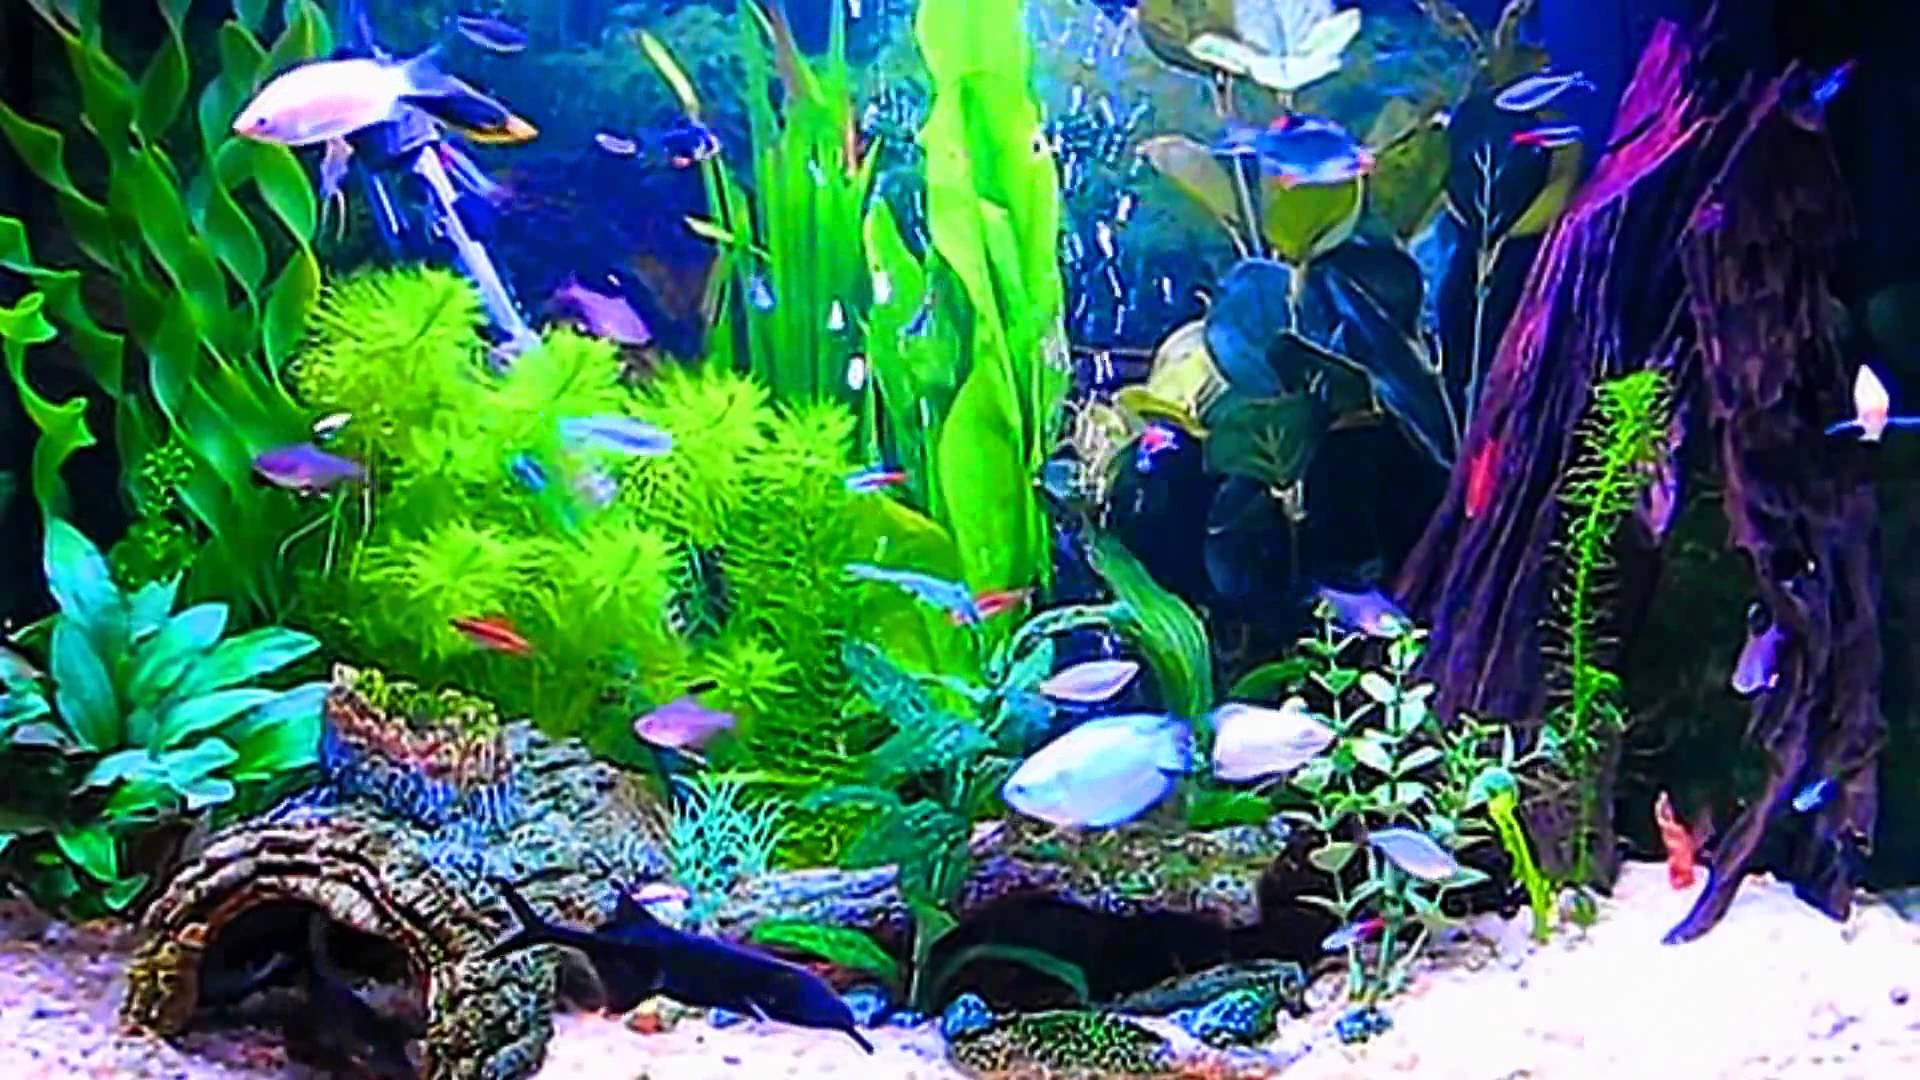 Aquarium Live Wallpaper Windows 10 - WallpaperSafari